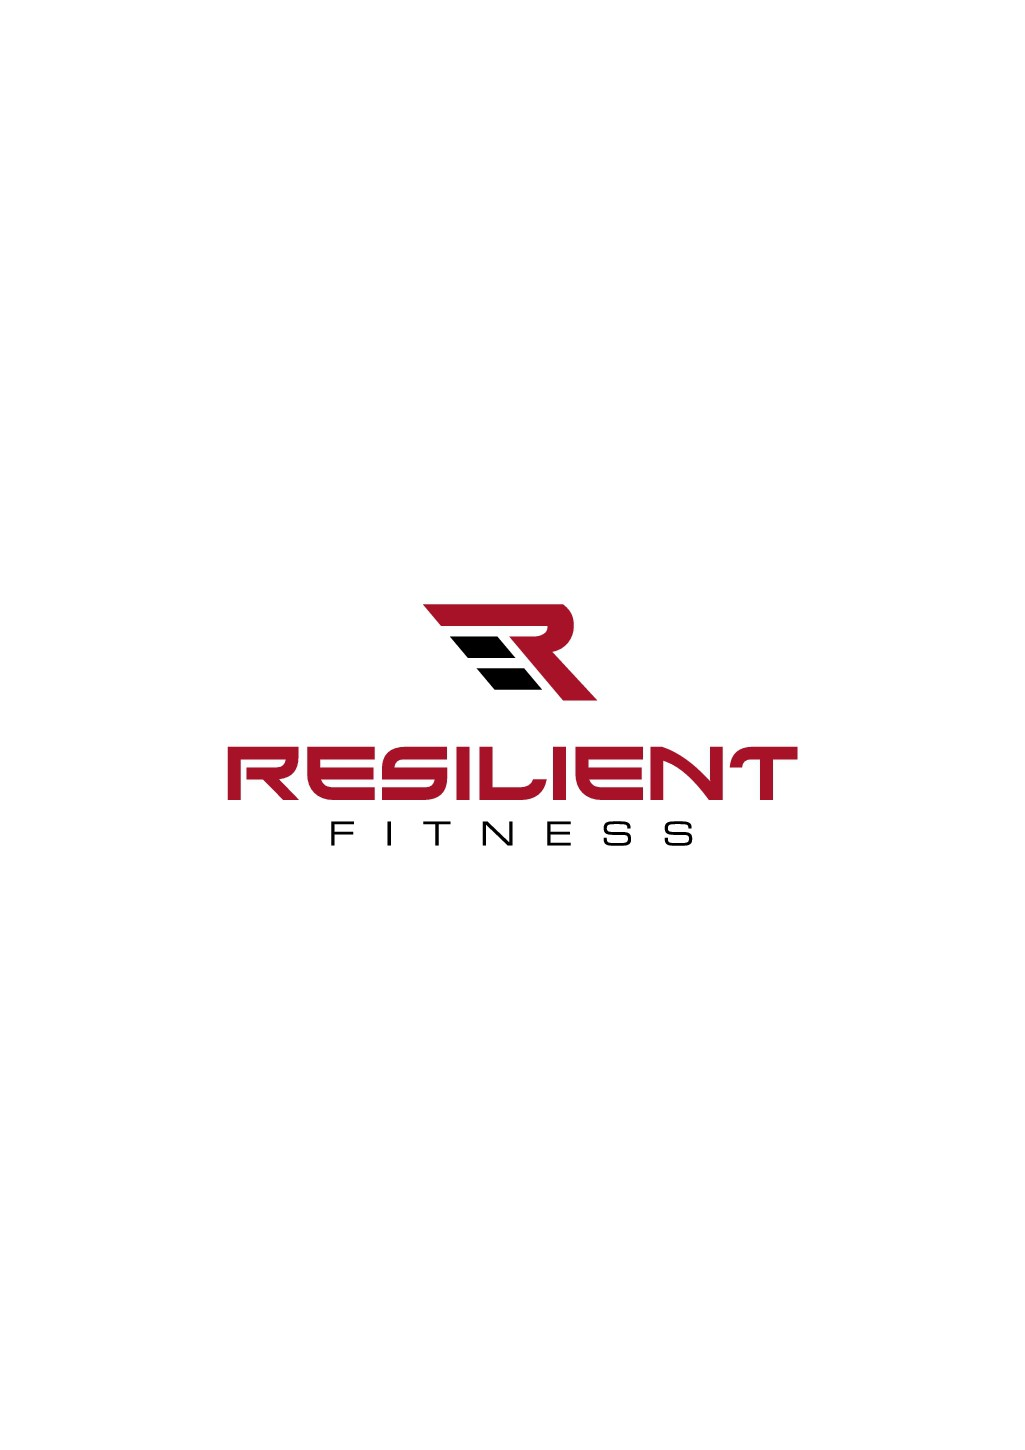 New Results Oriented Fitness Center Built on Passion Needs a Logo